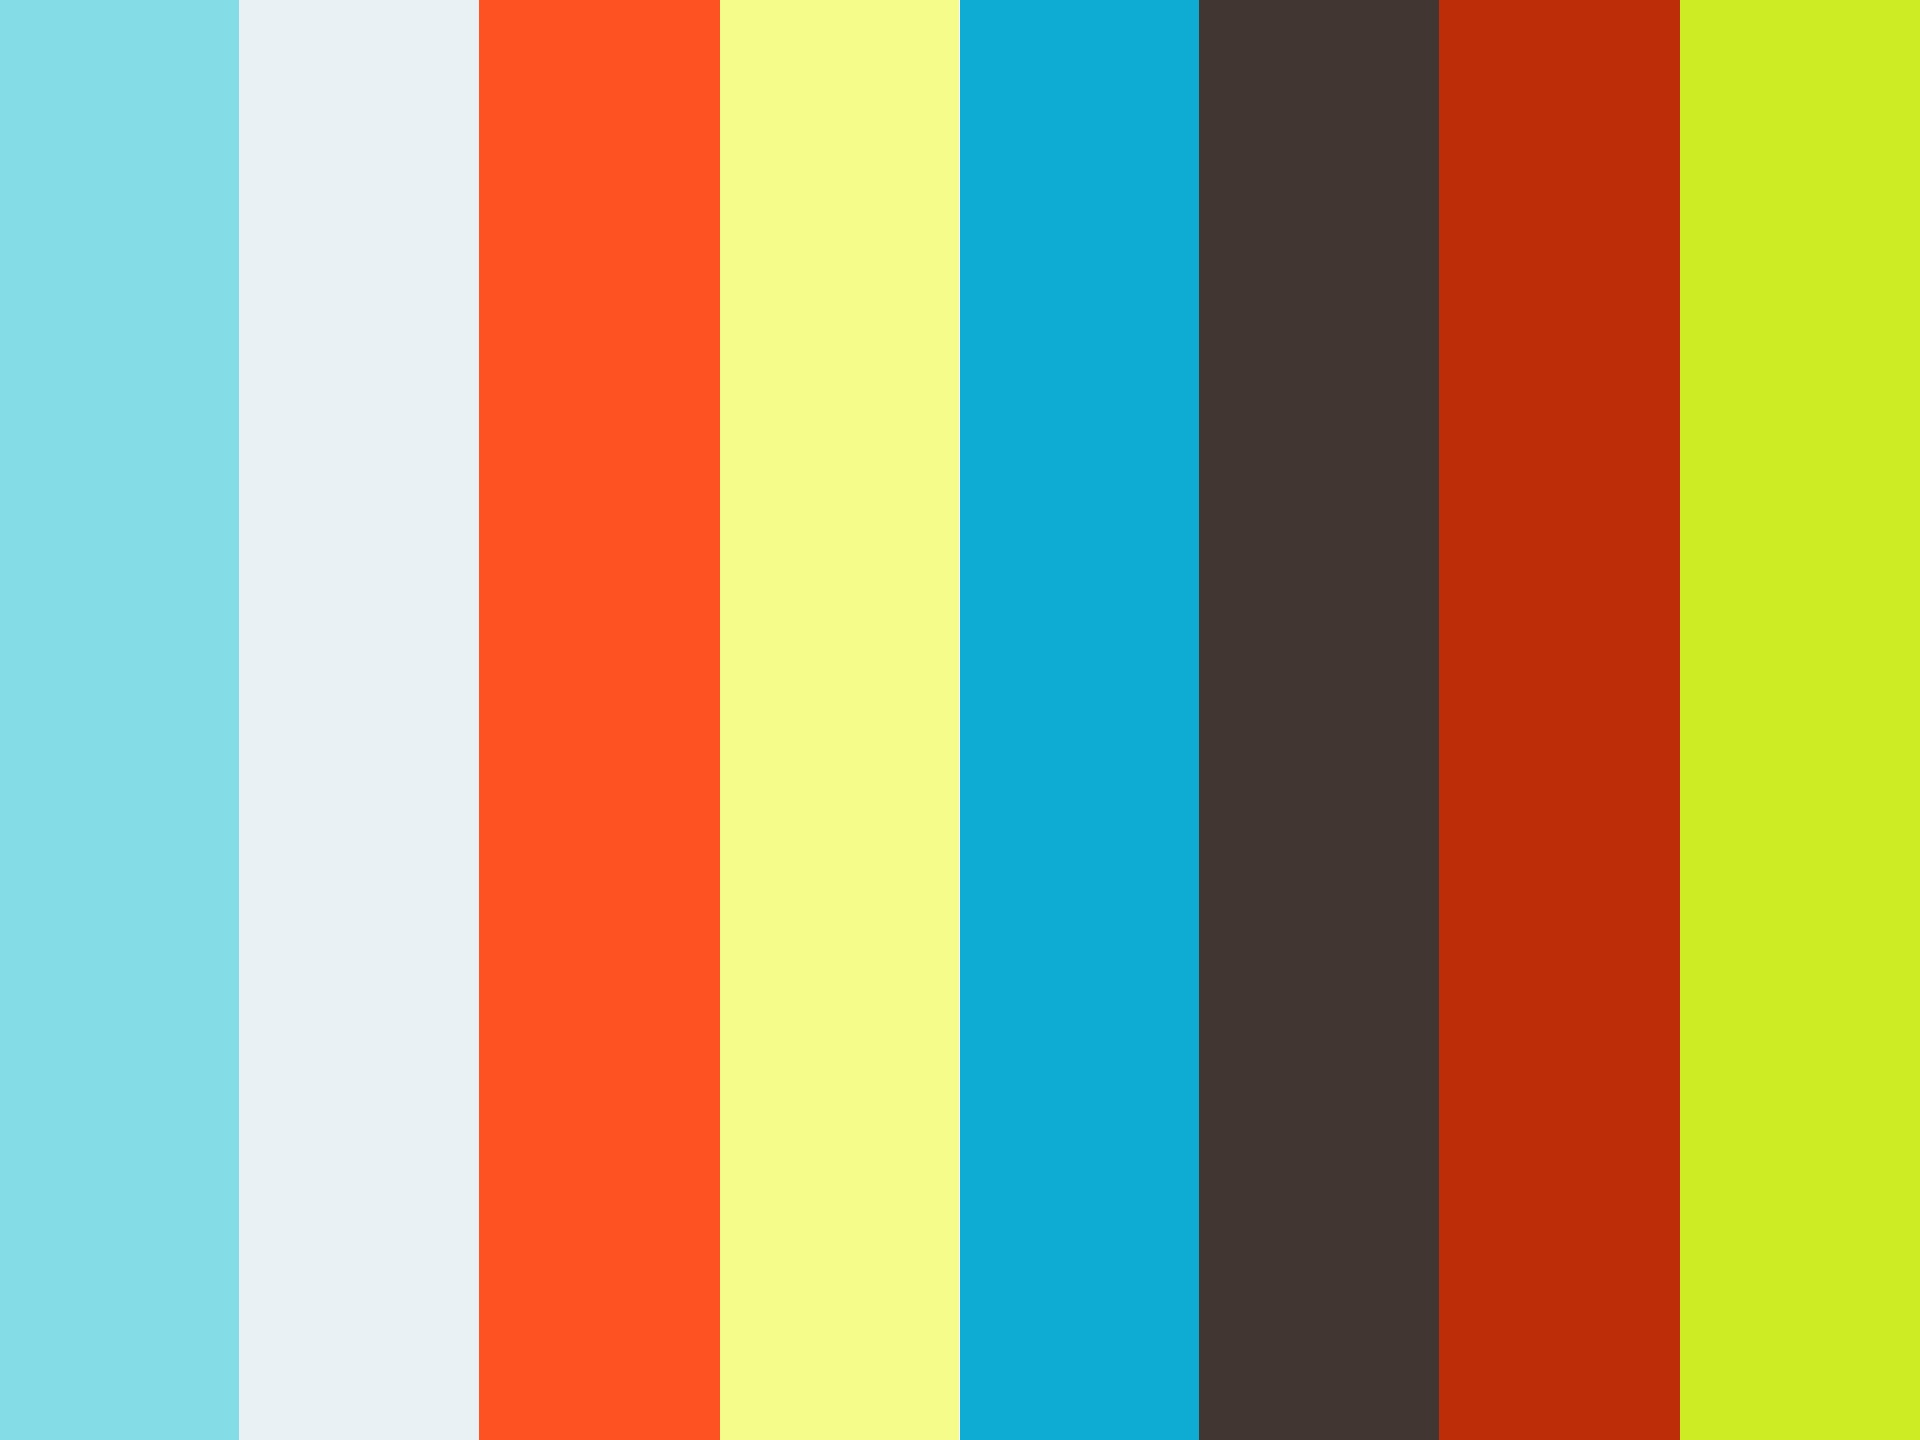 All Noggin Original Logos G Major 7 On Vimeo